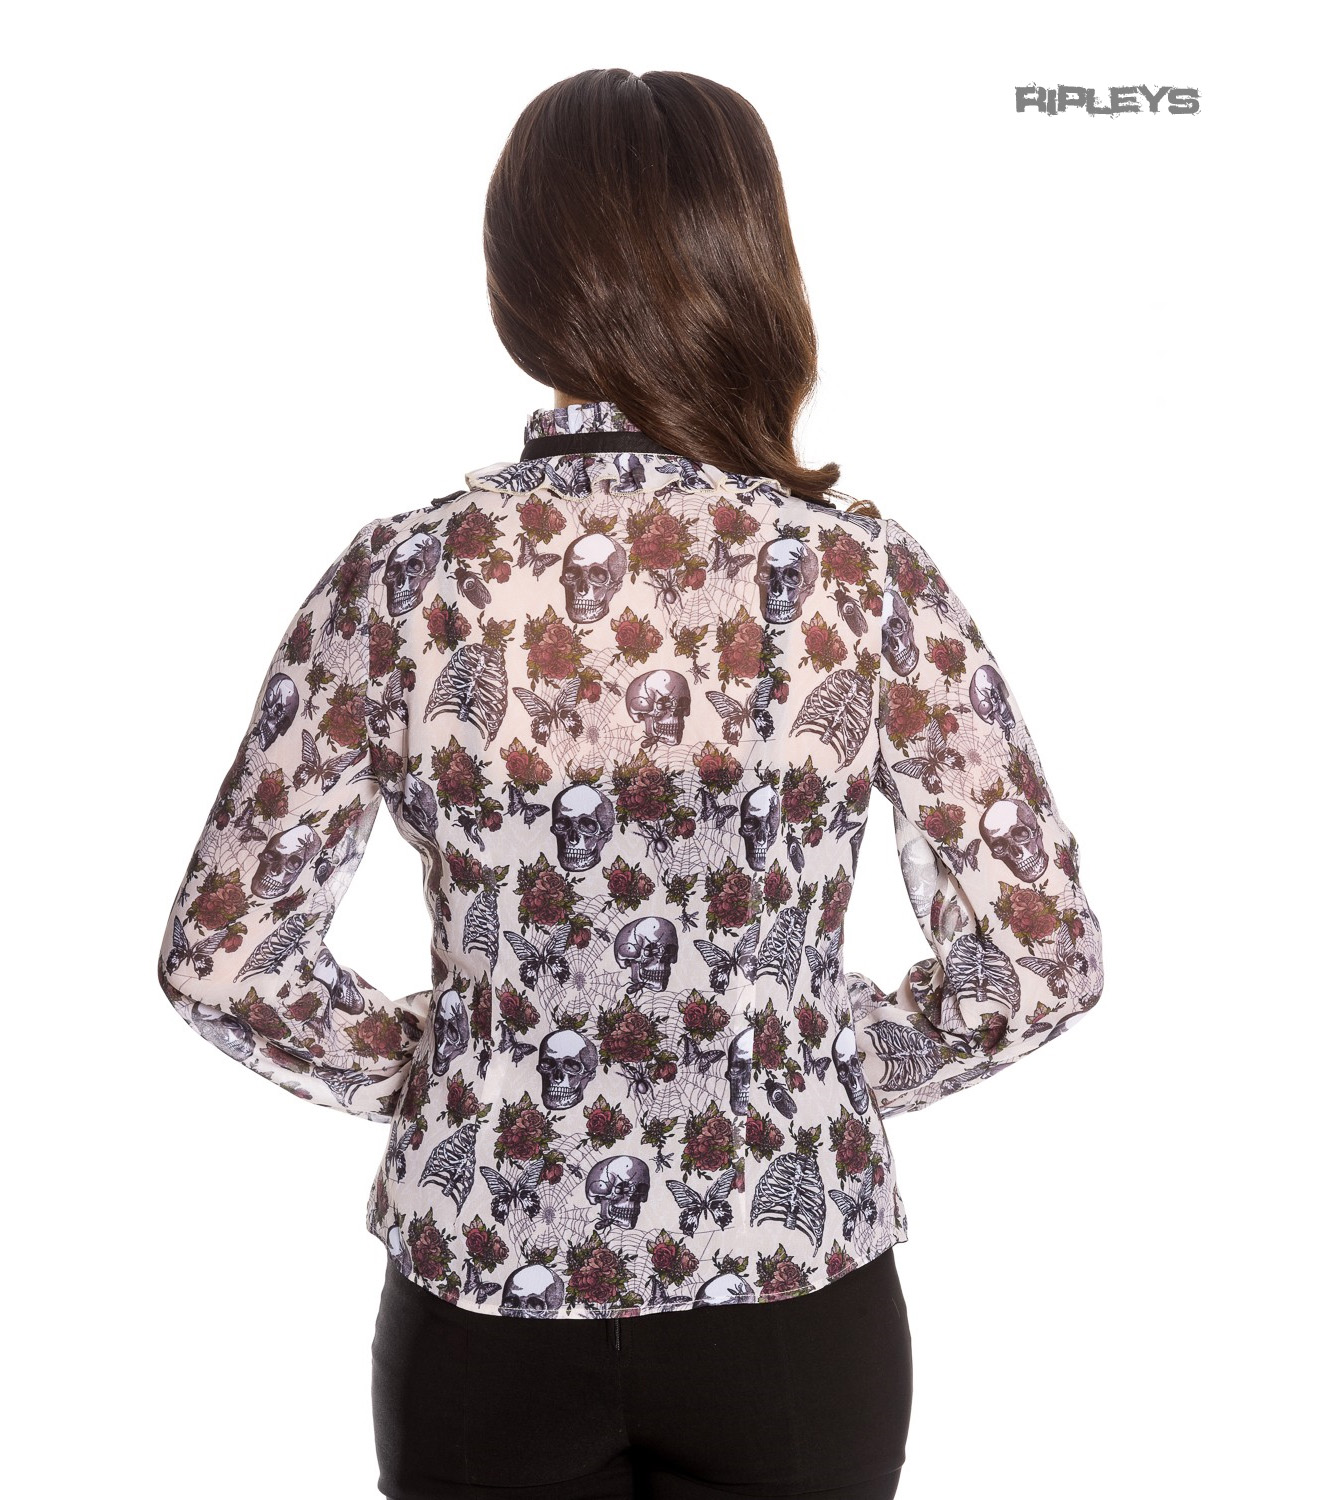 Hell-Bunny-Chiffon-Shirt-Top-Gothic-Skulls-Roses-GRISELDA-Blouse-Ivory-All-Sizes thumbnail 20